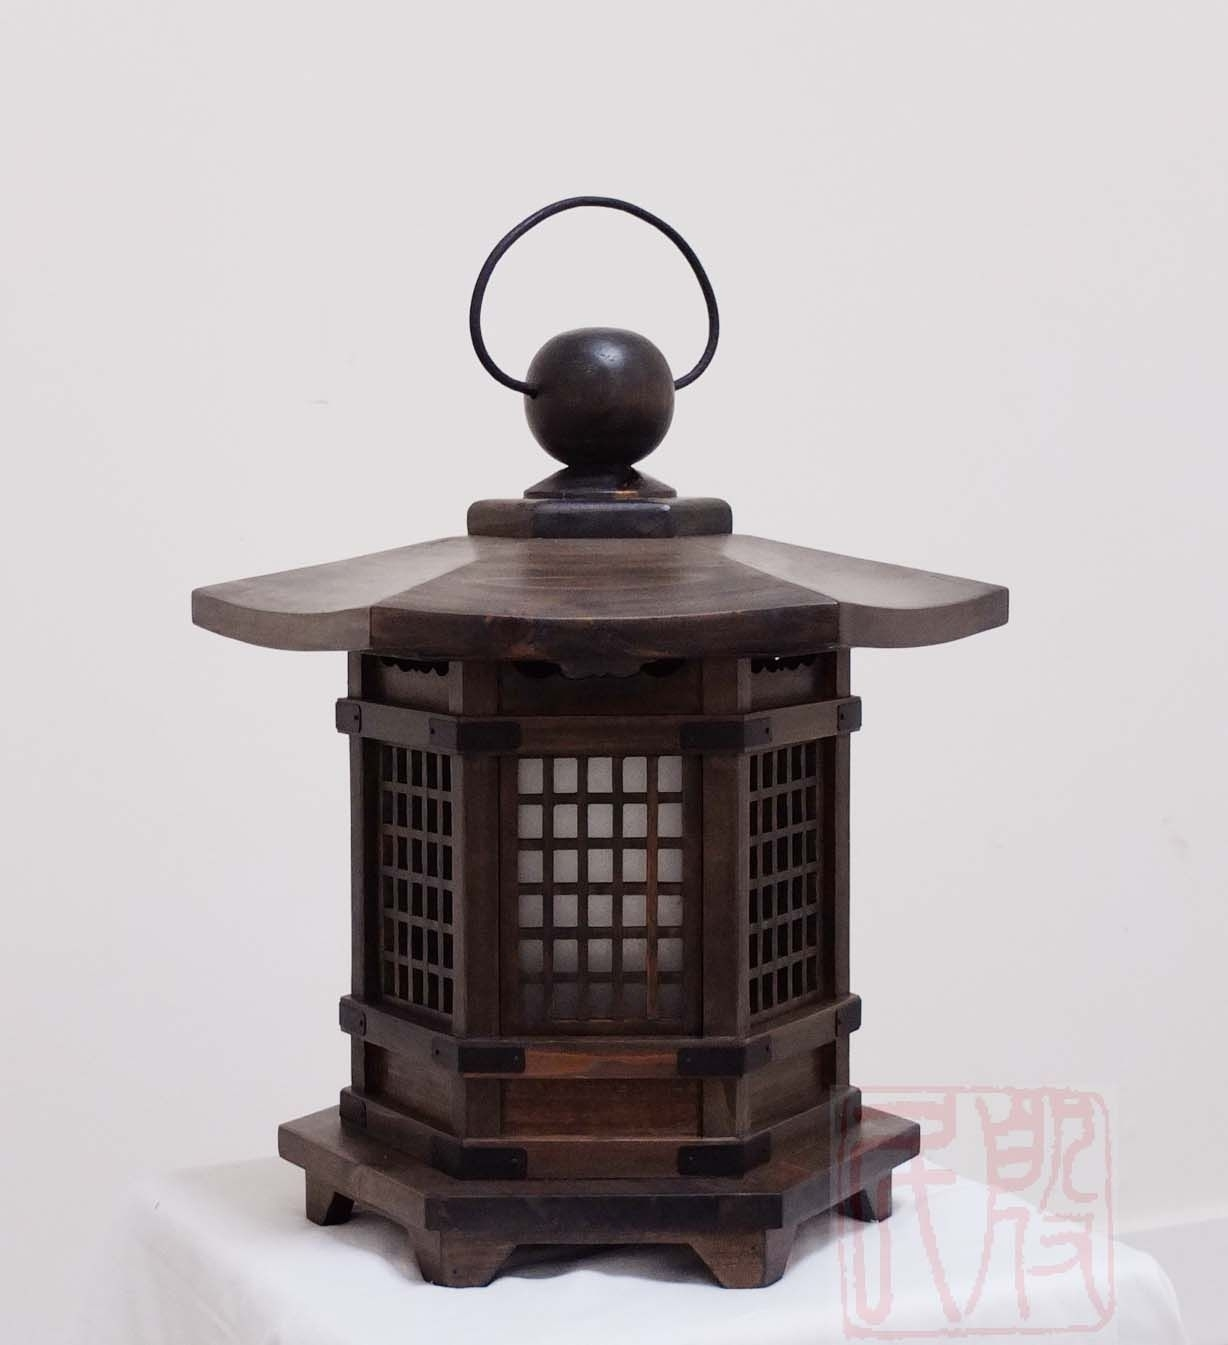 Antique Wood Japanese Lanterns - Google Search … | Wooden Lamp | Pinte… with Outdoor Hanging Japanese Lanterns (Image 2 of 20)